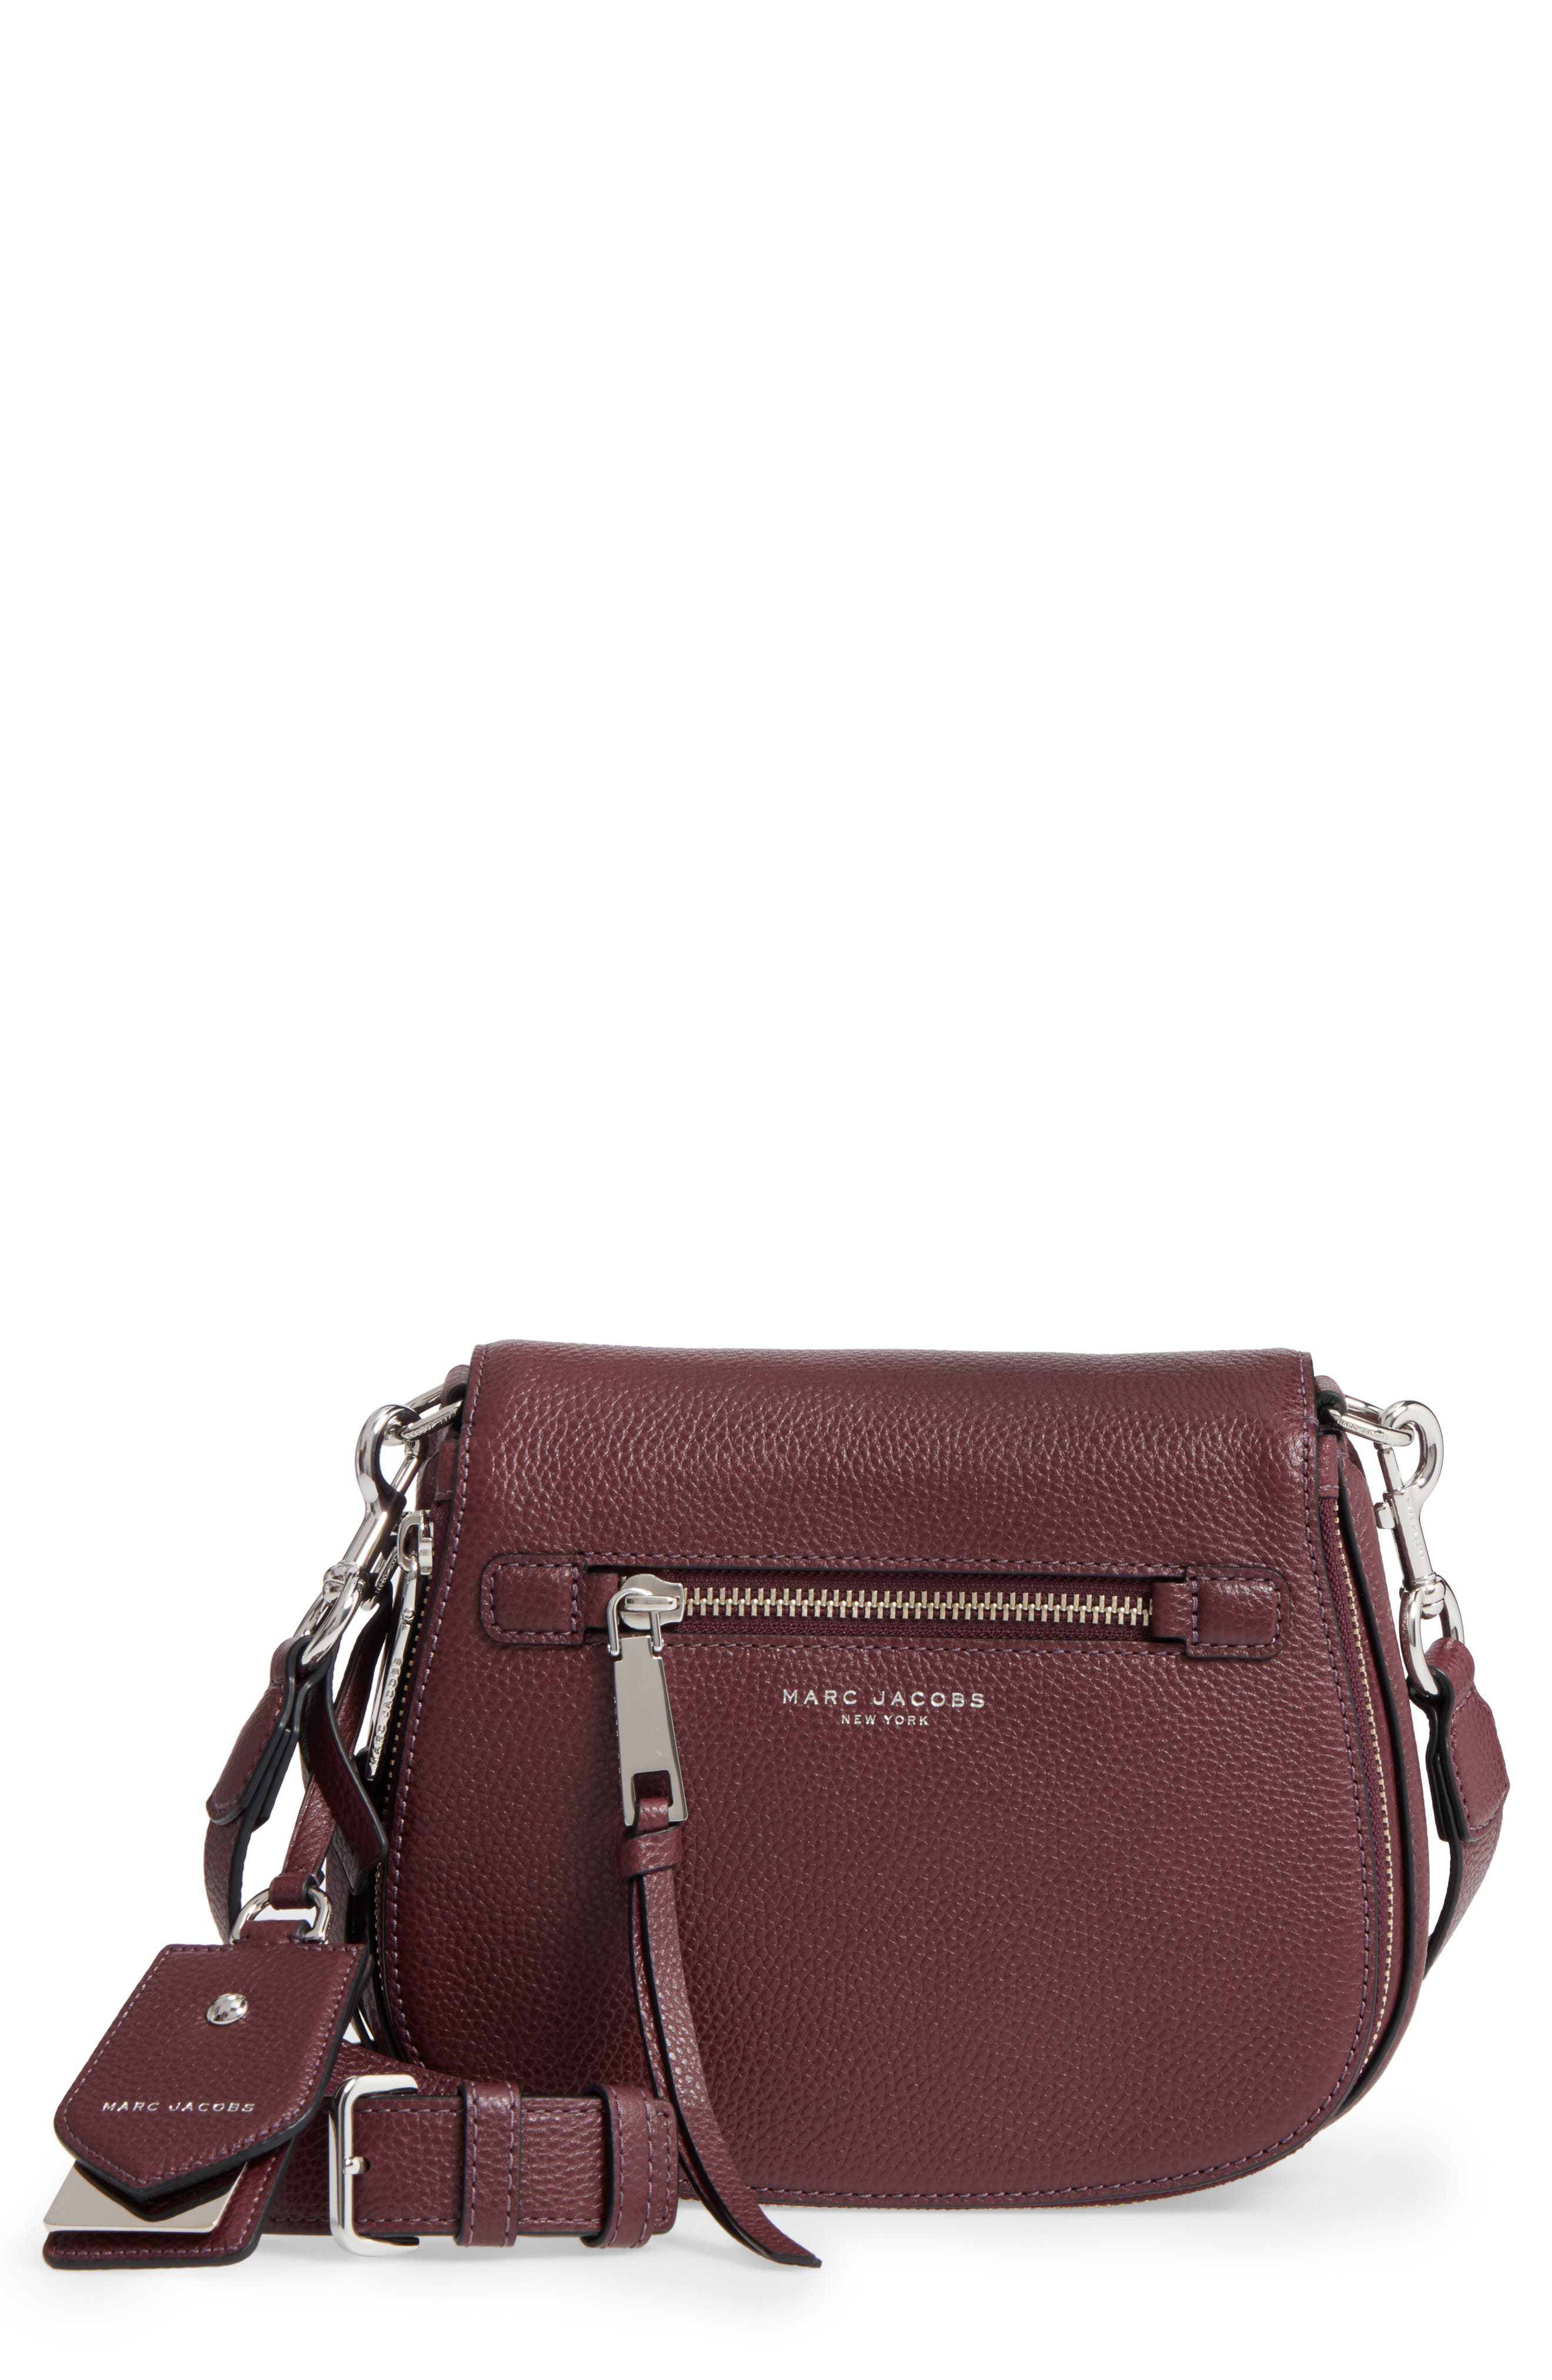 Small Recruit Nomad Pebbled Leather Crossbody Bag,                             Main thumbnail 2, color,